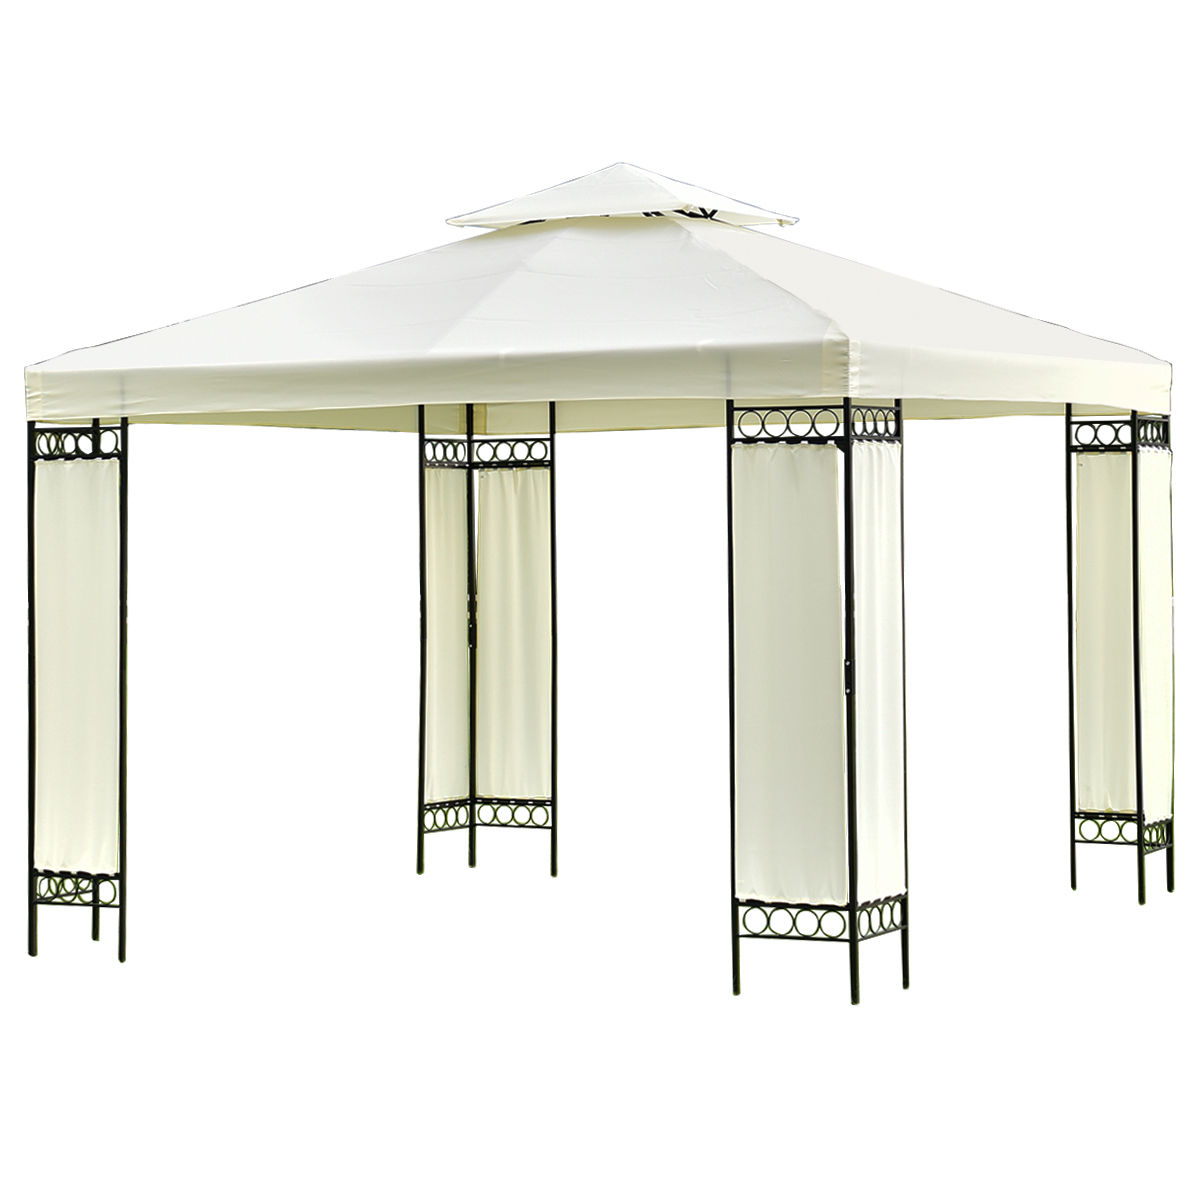 Gymax 10'x10' 2-Tier Gazebo Canopy Shelter Wedding Party Tent by Gymax